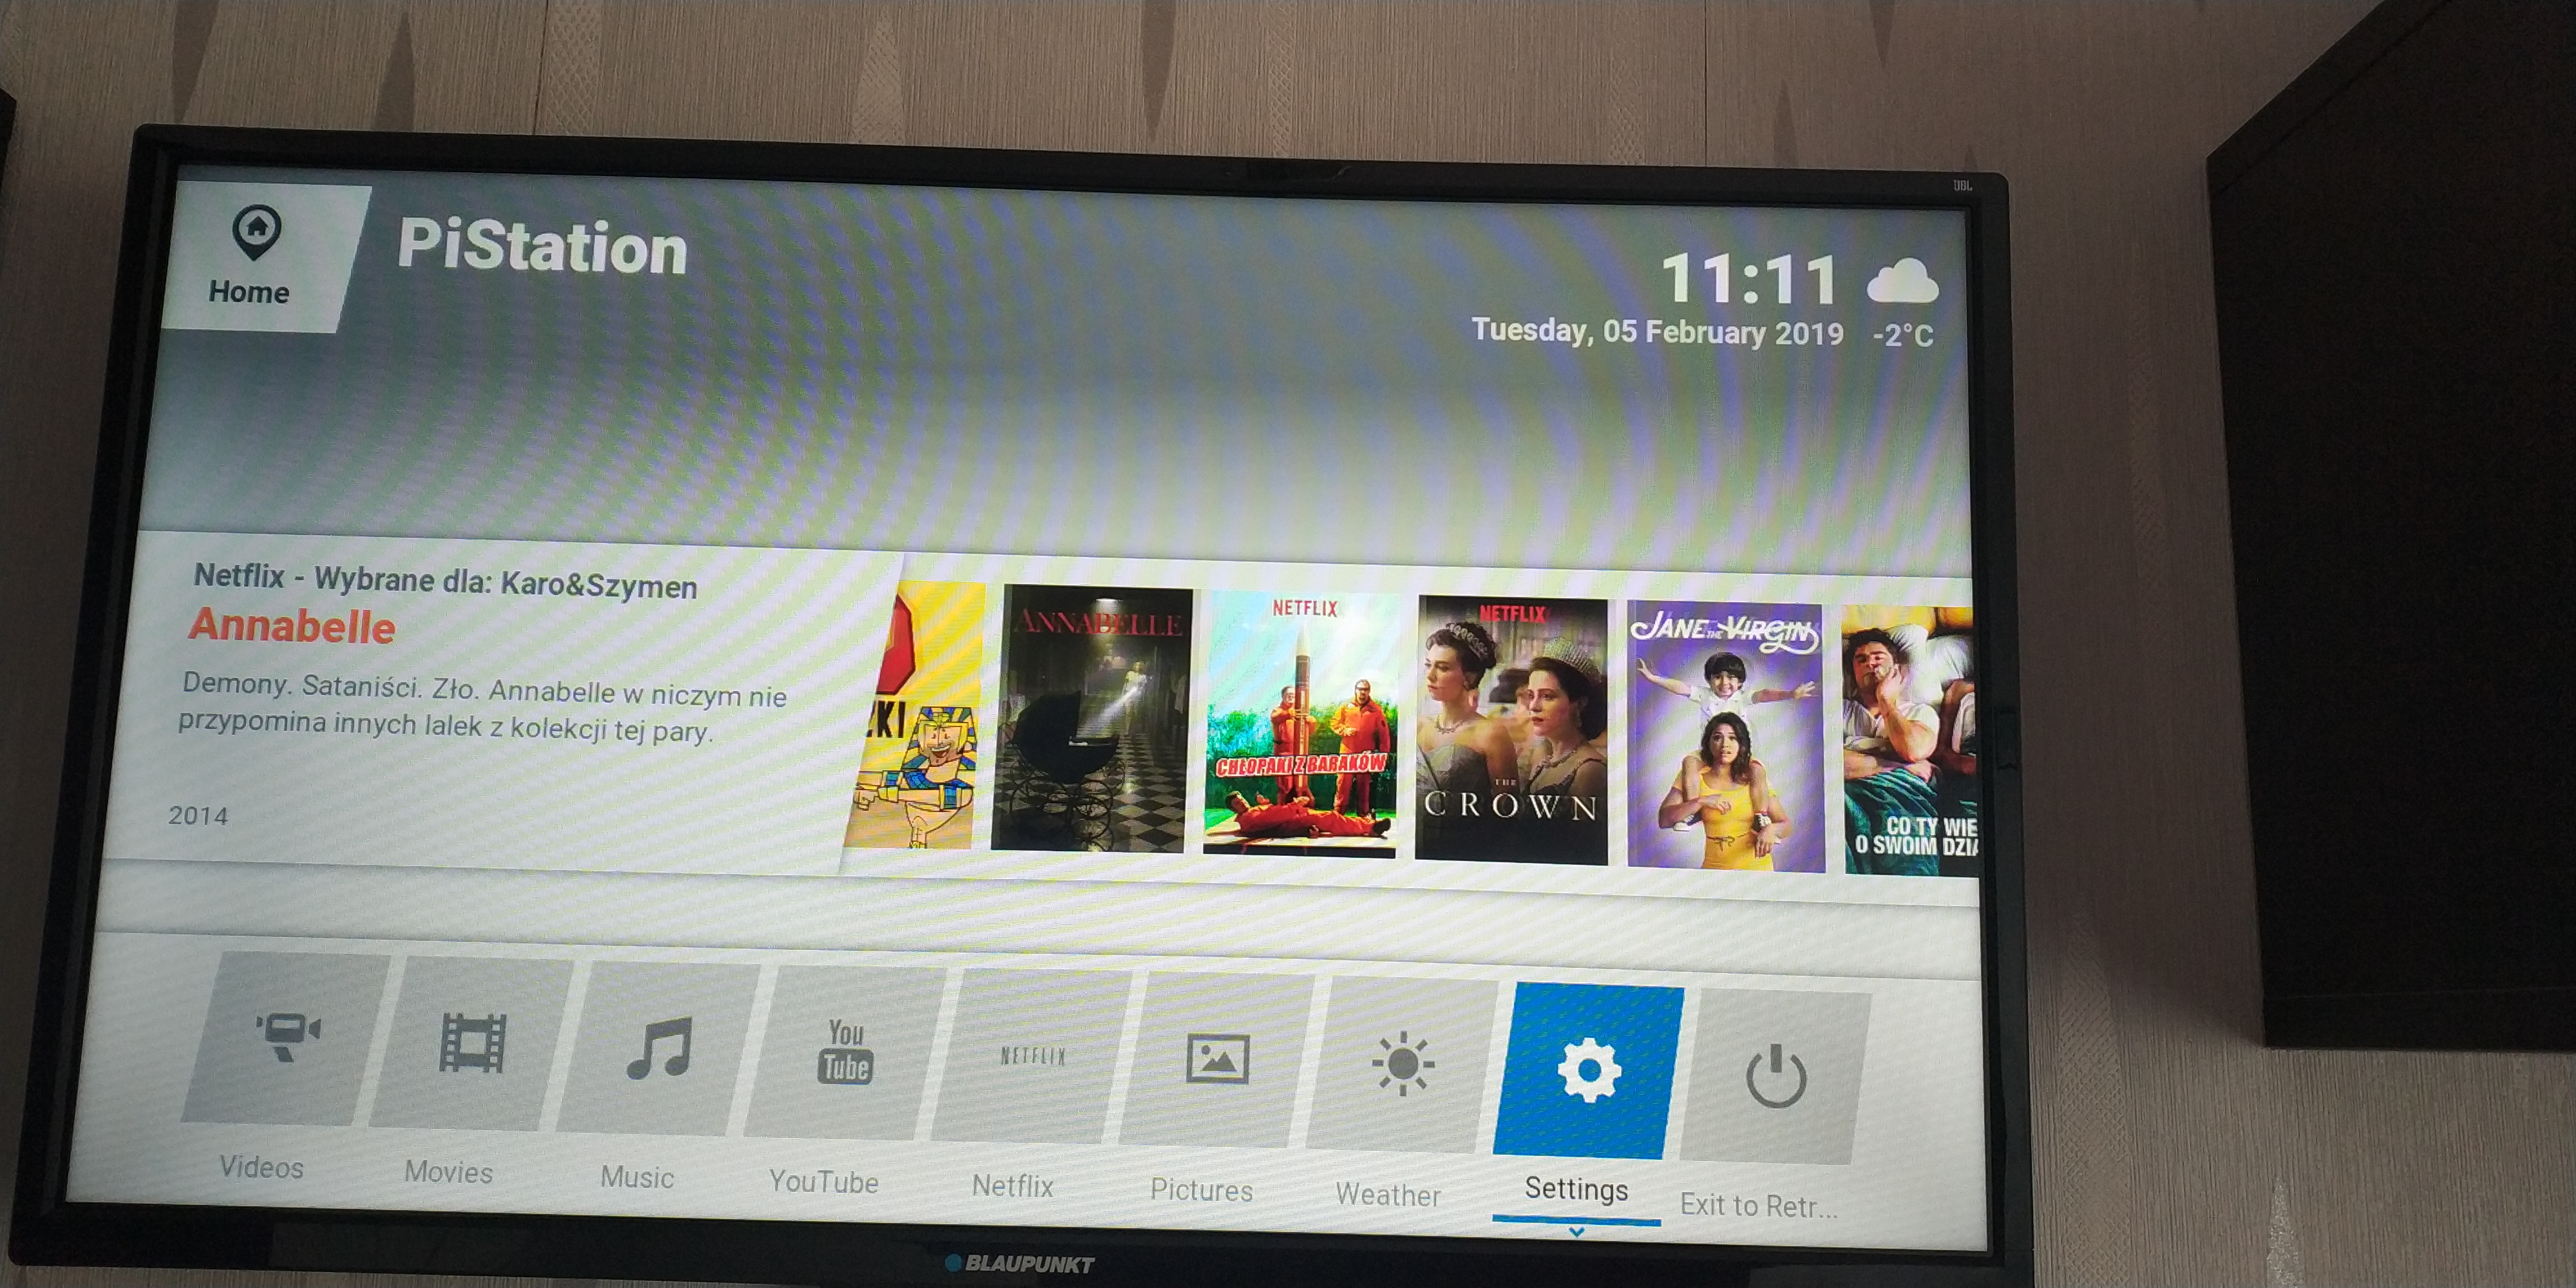 Netflix home-screen widget does not work on Kodi startup